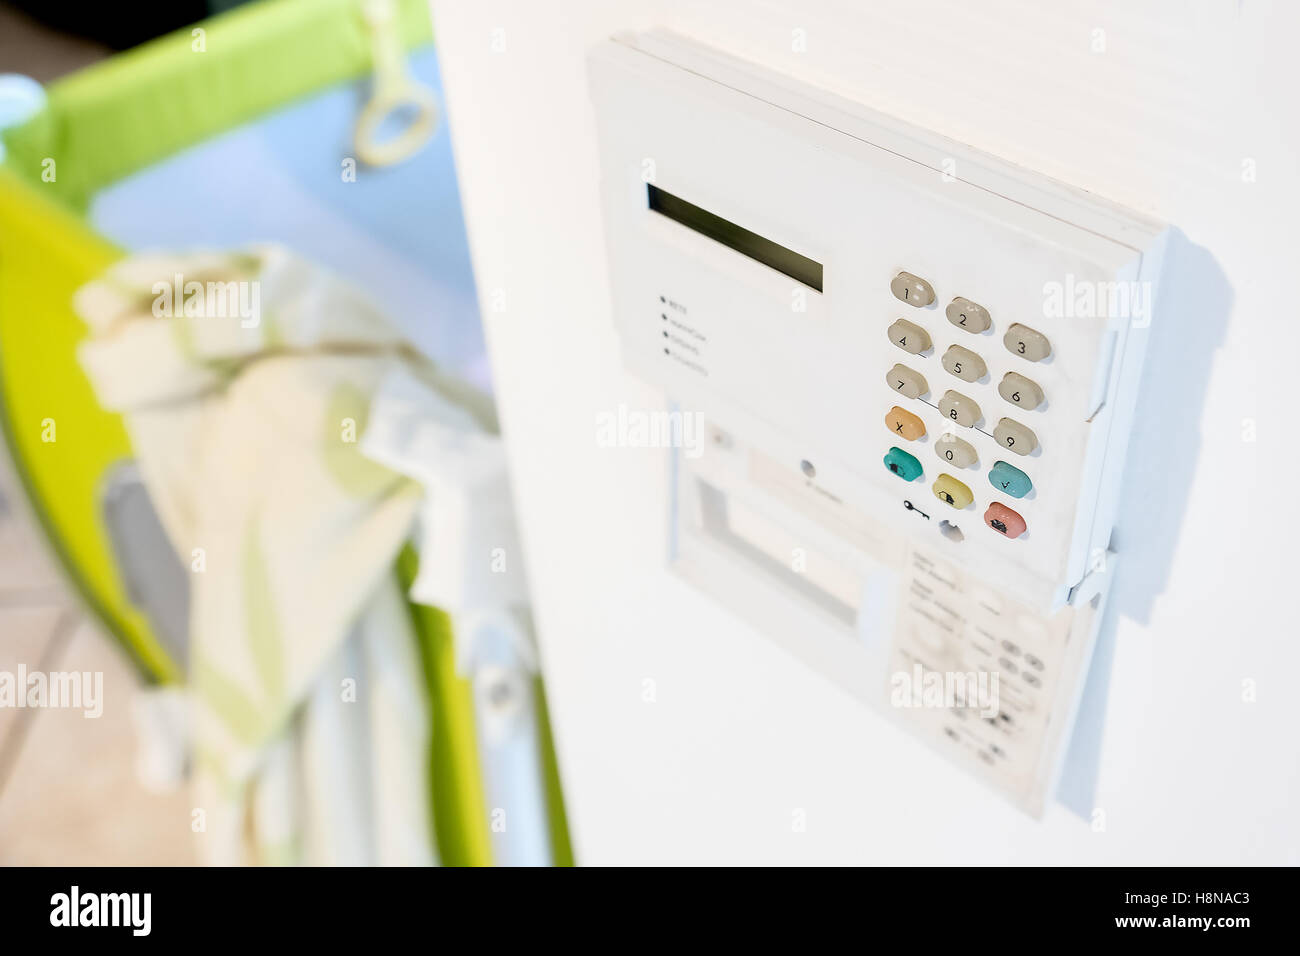 home security system alarm - Stock Image